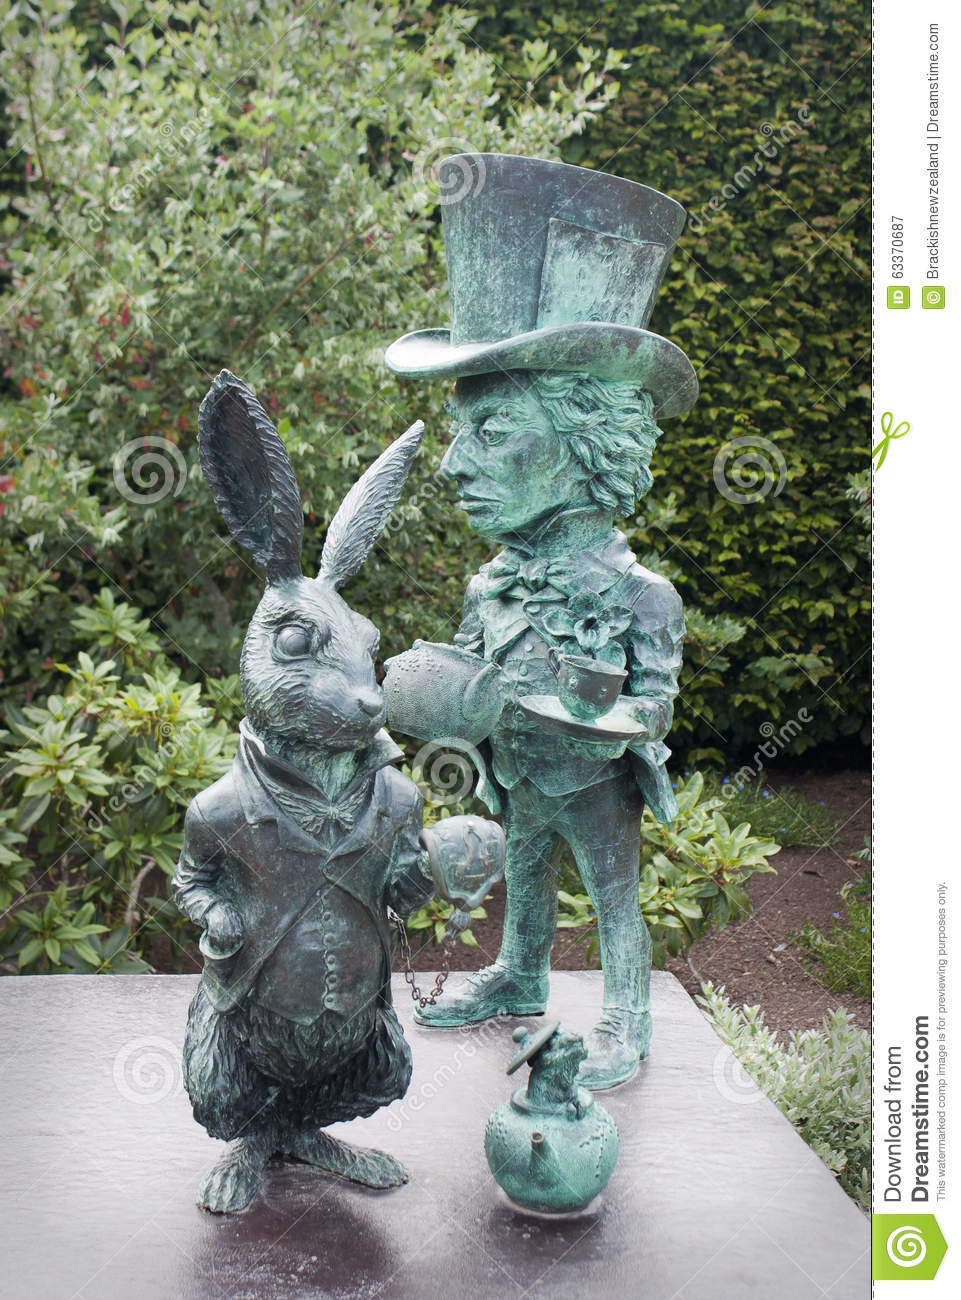 alice in wonderland statue stock image image of zealand